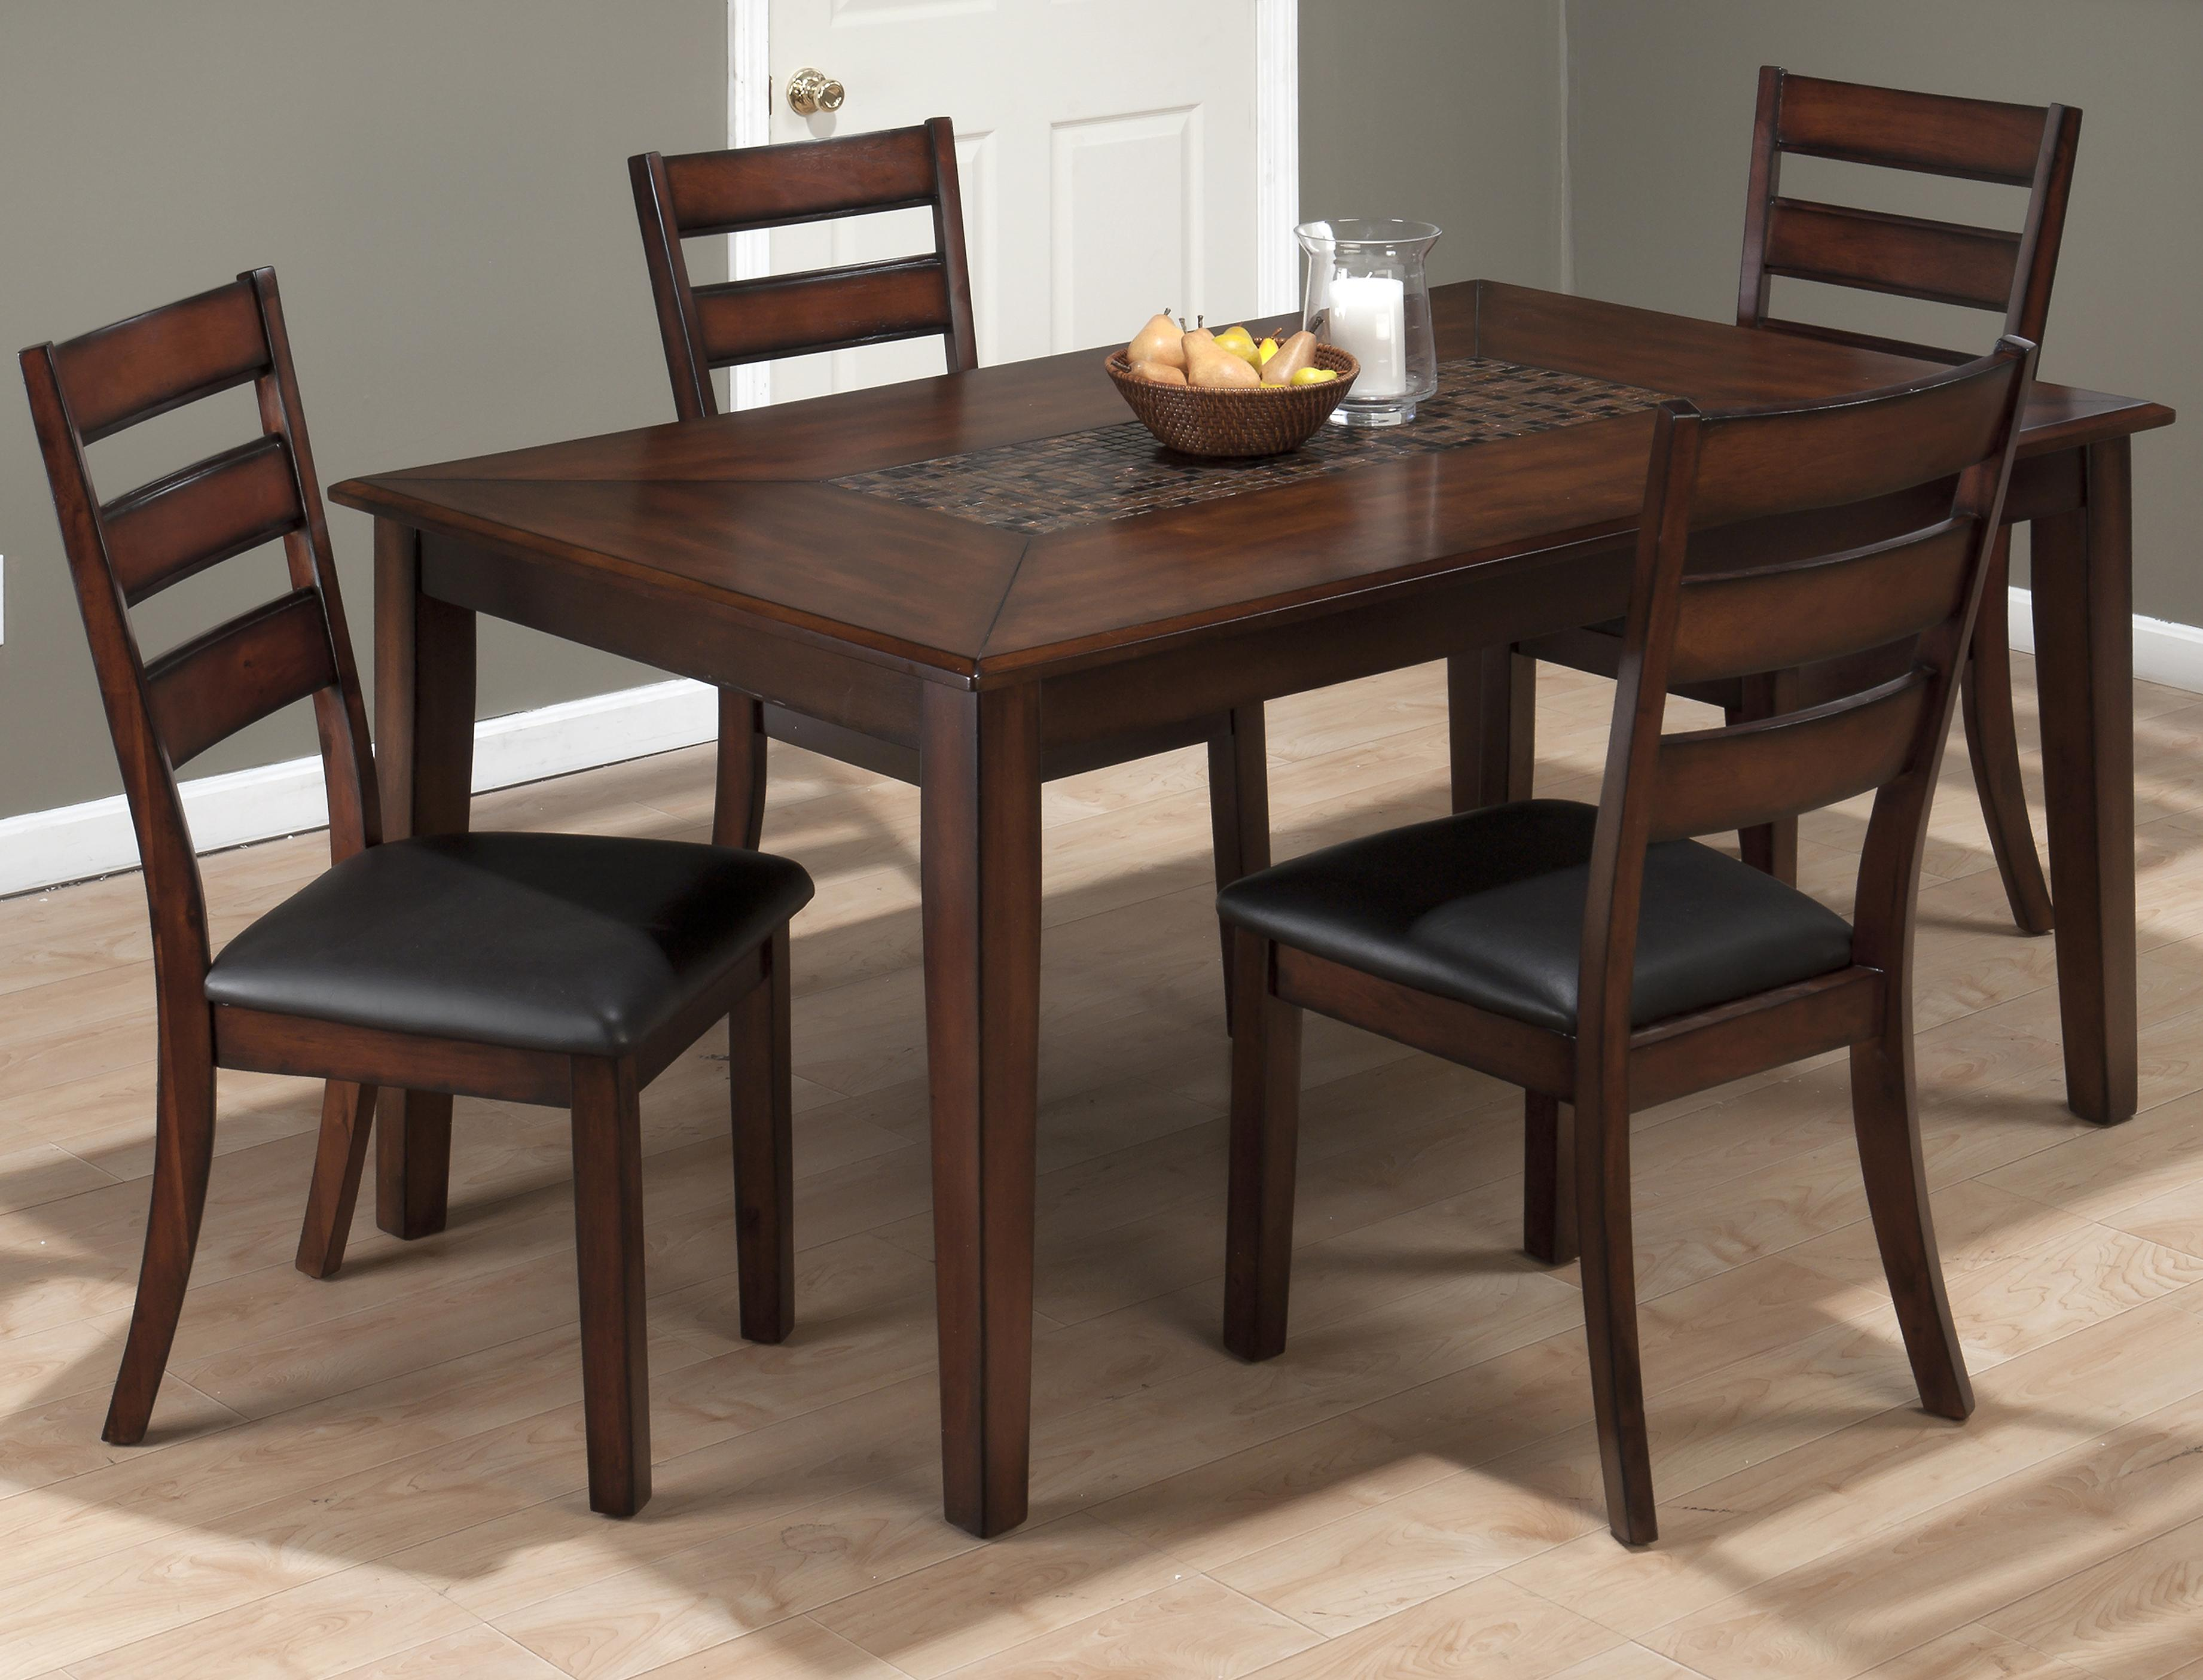 Great Jofran Baroque Brown Pub Table And Slat Back Chair Set   Godby Home  Furnishings   Pub Table And Stool Set Noblesville, Carmel, Avon,  Indianapolis, Indiana